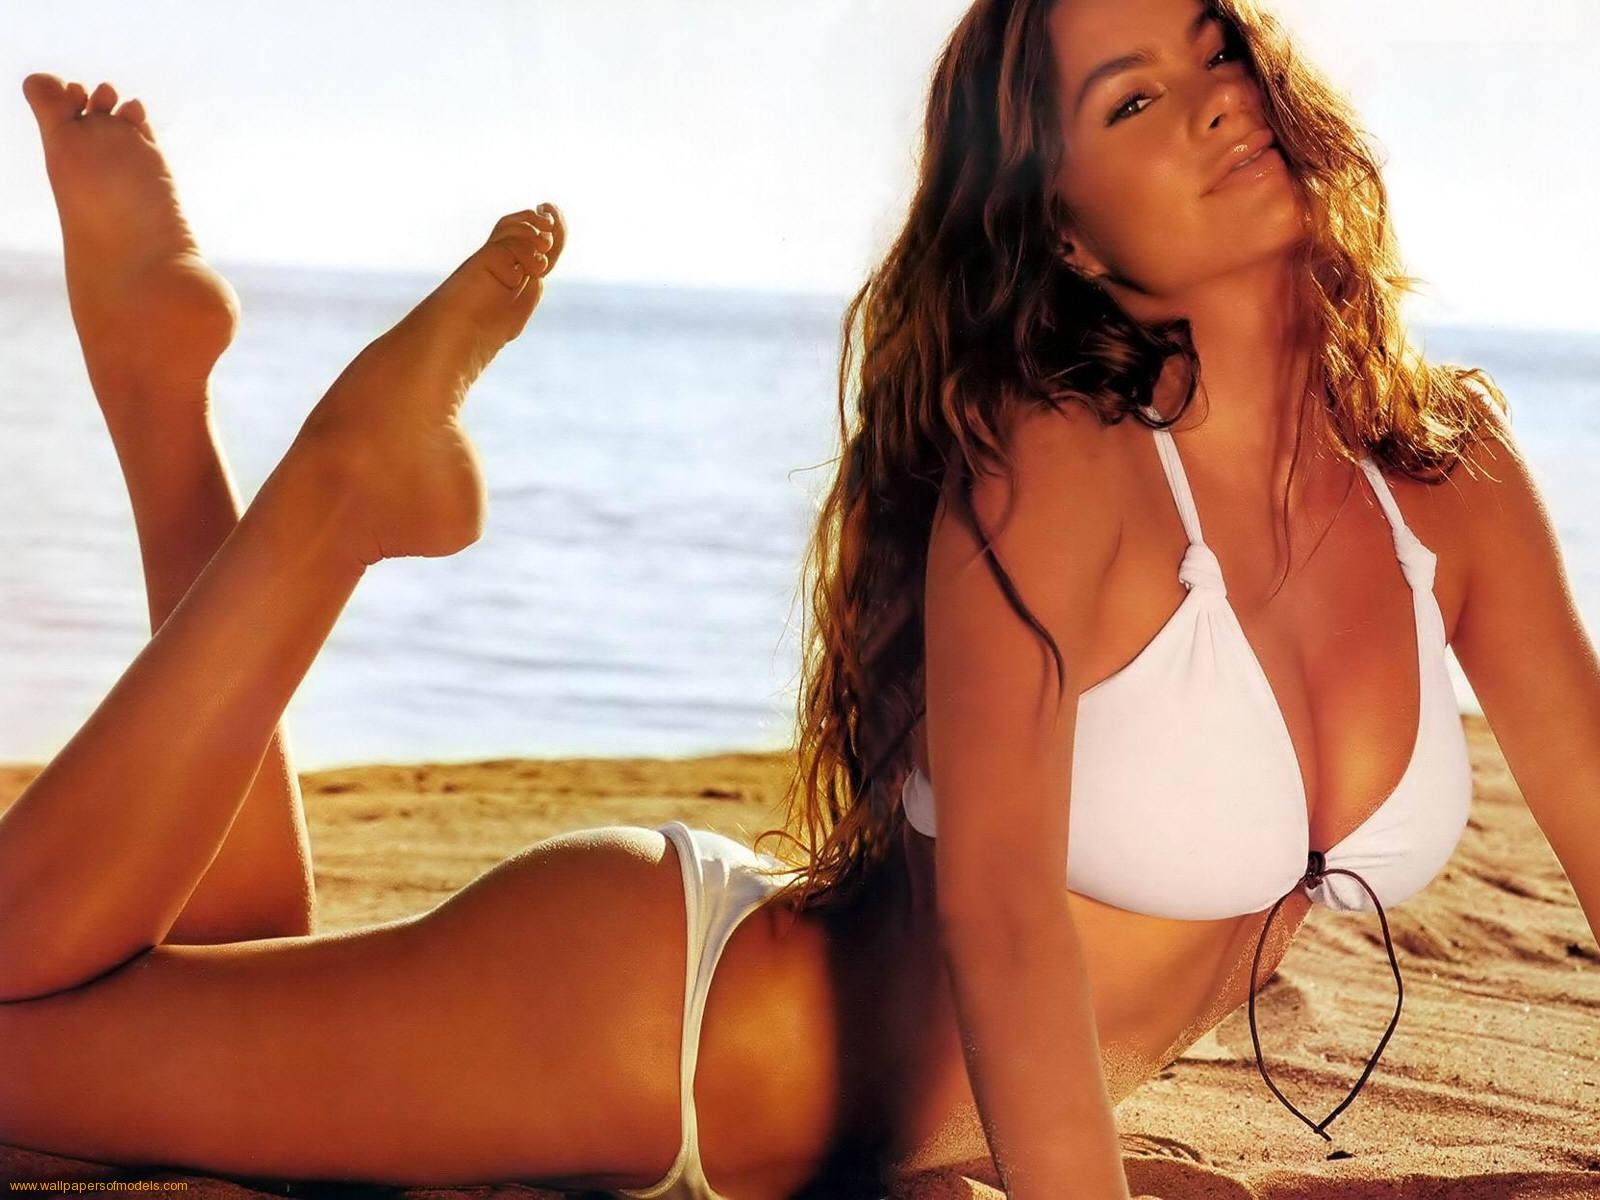 Sofia Vergara Bikini Photos